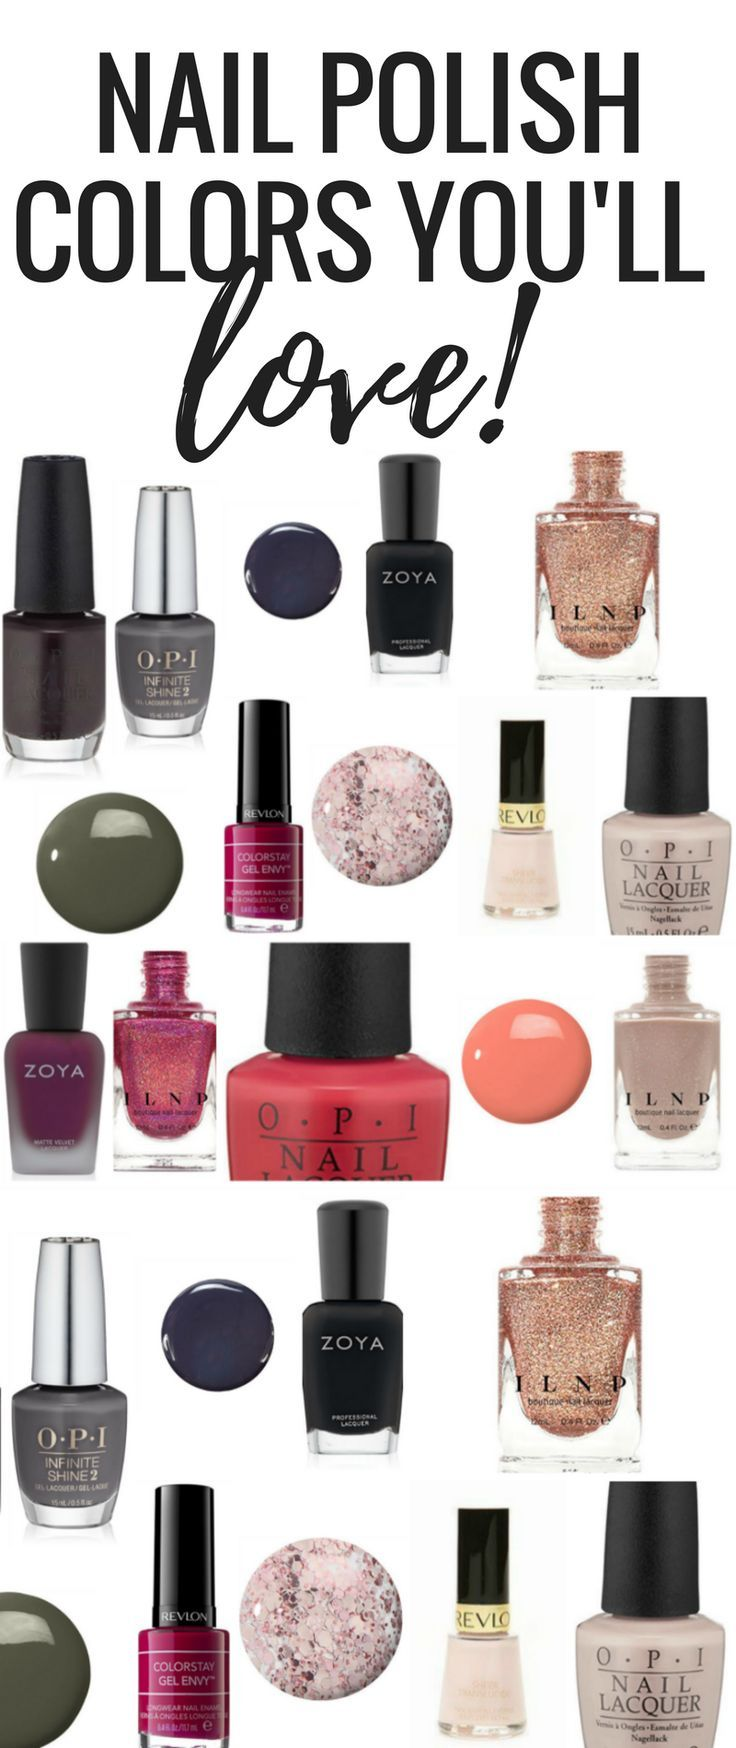 PRETTIEST nail polish colors for pedicures and manicures! Best nail polish brands and colors. Affiliate links.